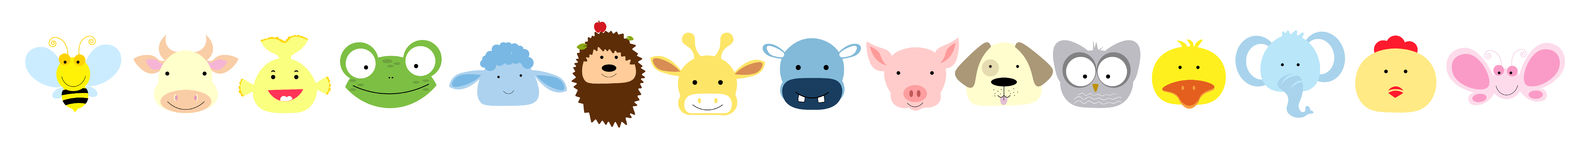 Vector Collection of Cute Animal Faces royalty free stock photo